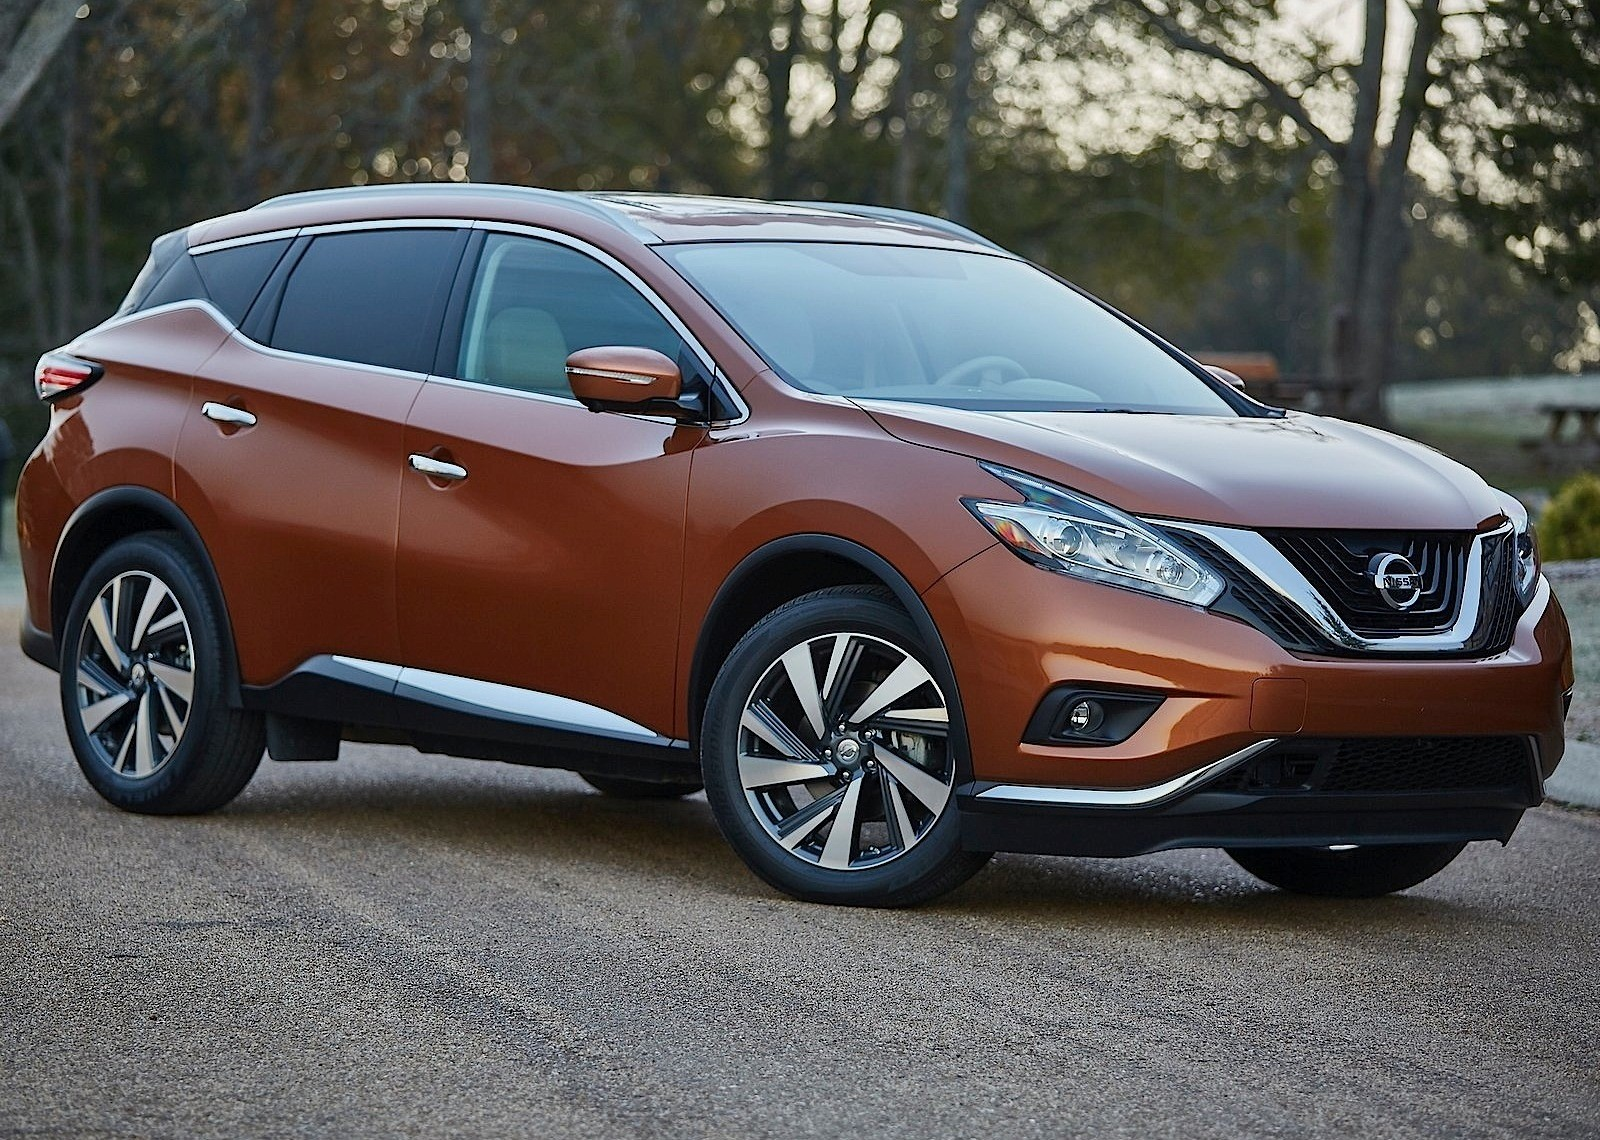 nissan murano specs 2015 2016 2017 autoevolution. Black Bedroom Furniture Sets. Home Design Ideas